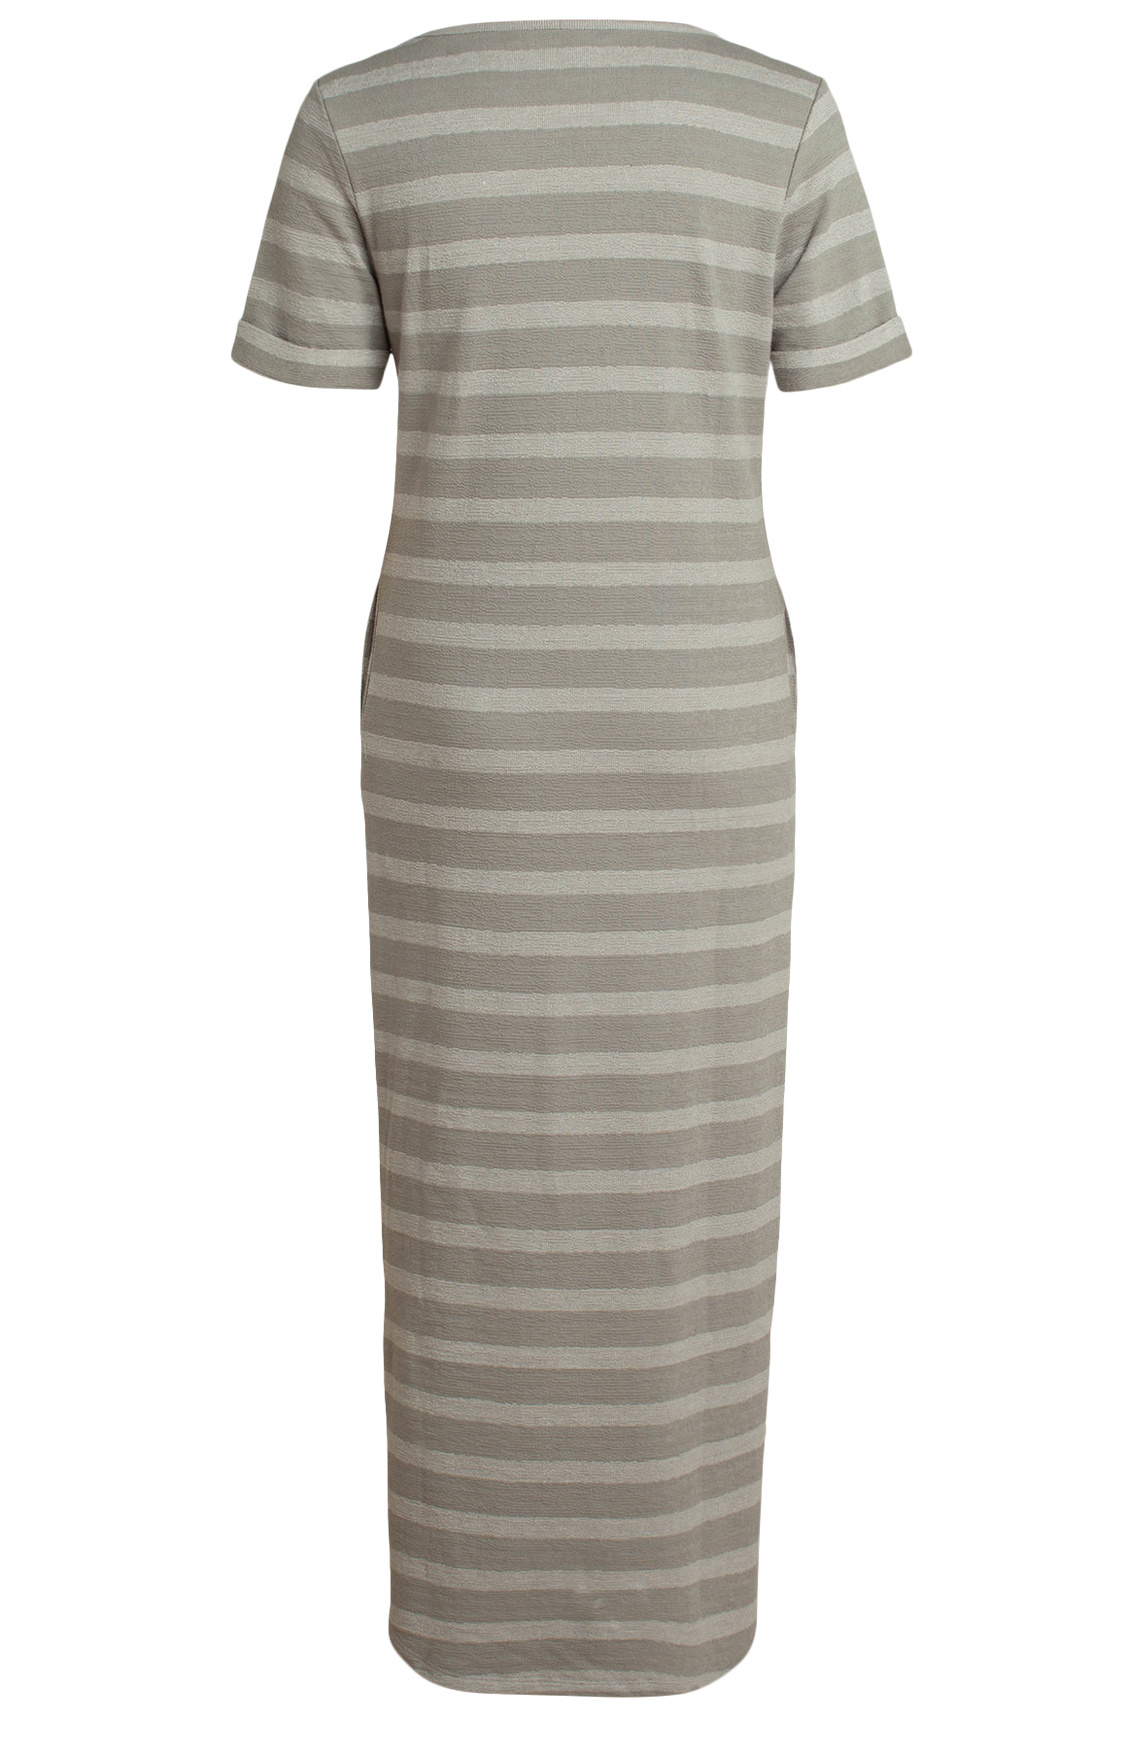 moscow Long Dress SP20-14.04  Chalk grey-2